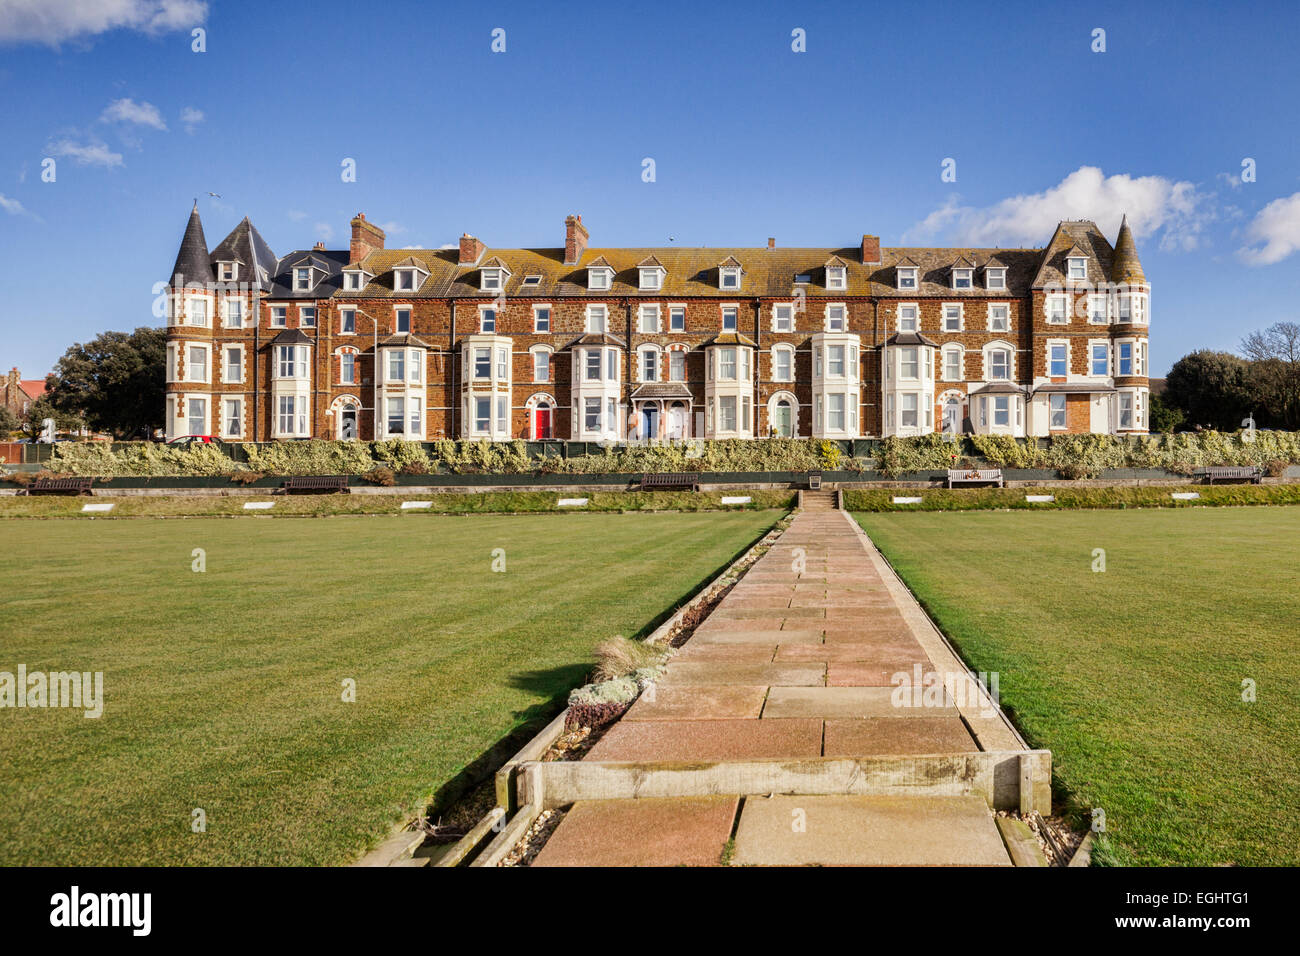 Cliff Parade bowling green and terrace of houses at Hunstanton, Norfolk. - Stock Image